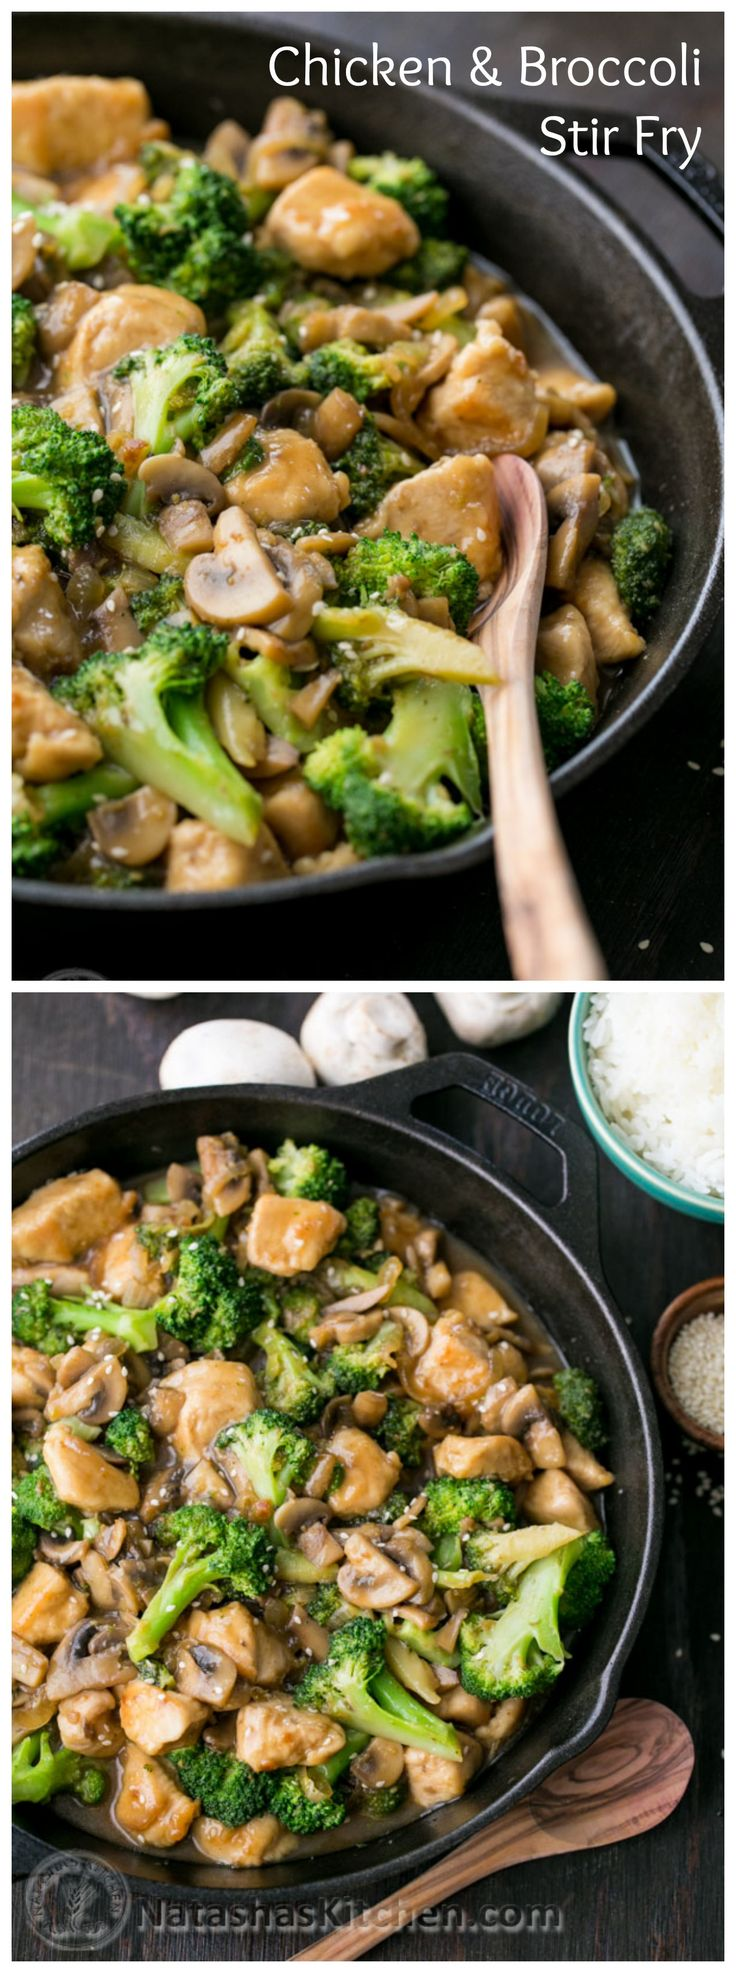 Chicken & Broccoli Stir Fry Recipe